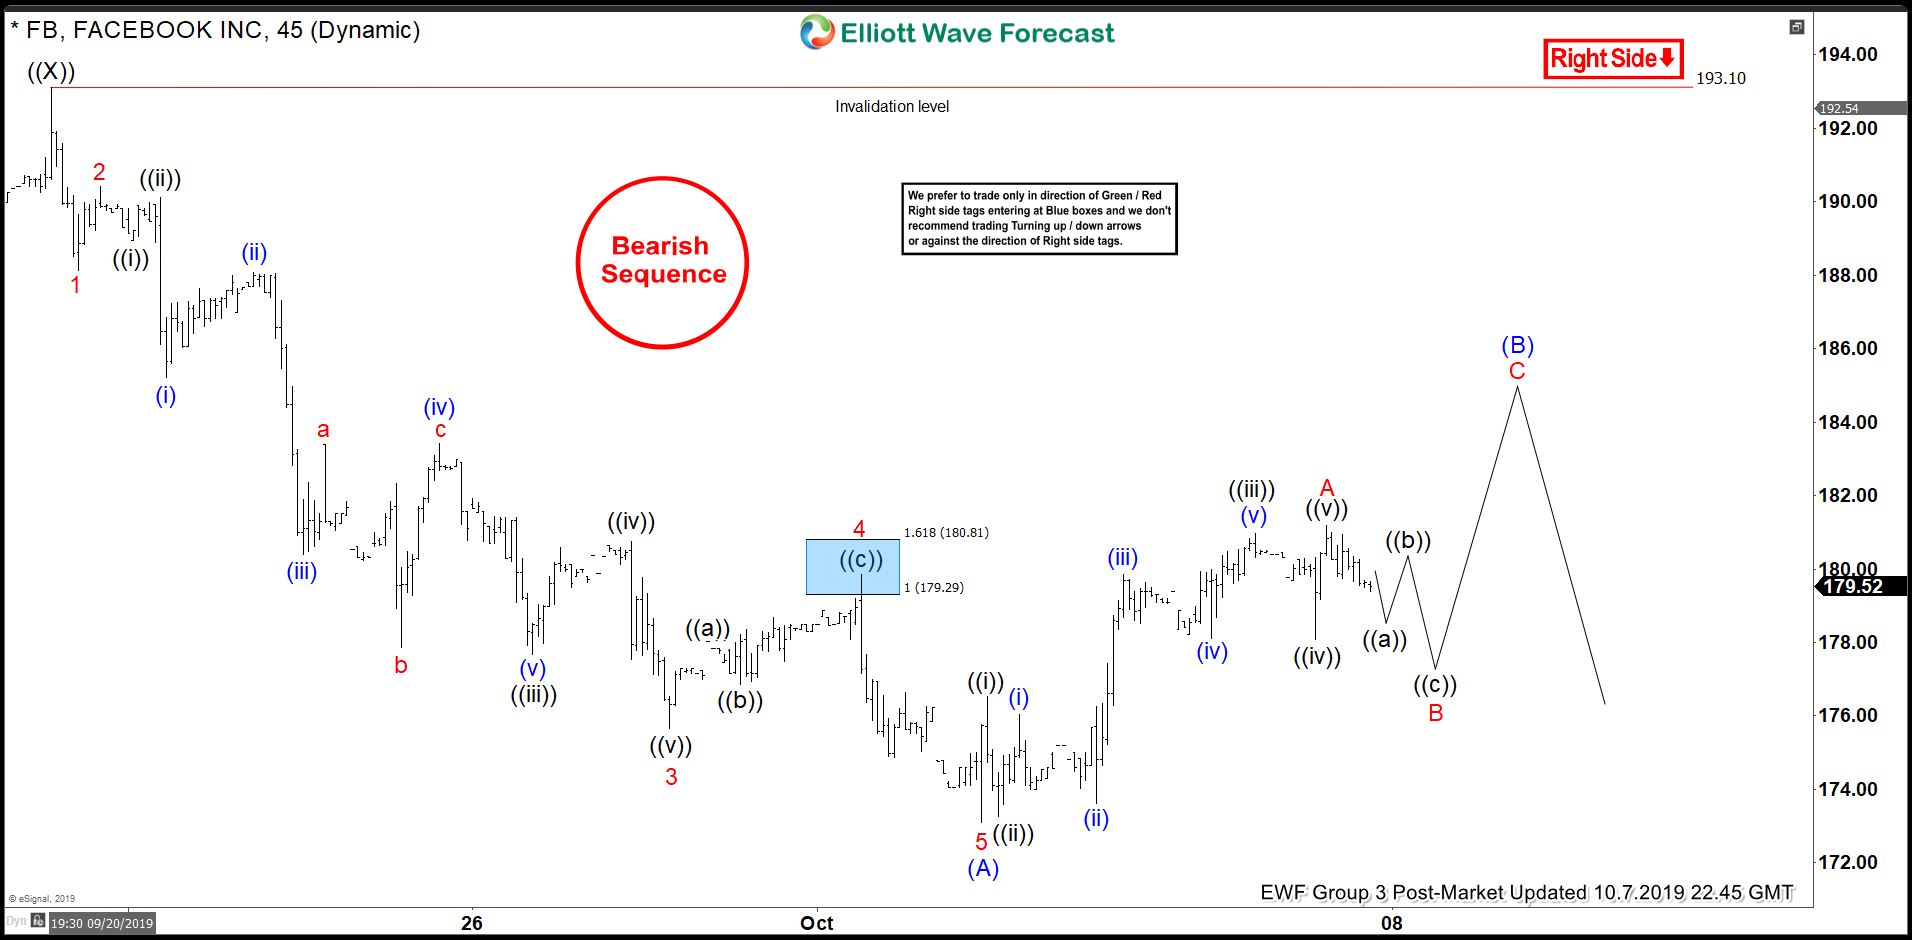 Elliott Wave View: Facebook can See Larger Correction